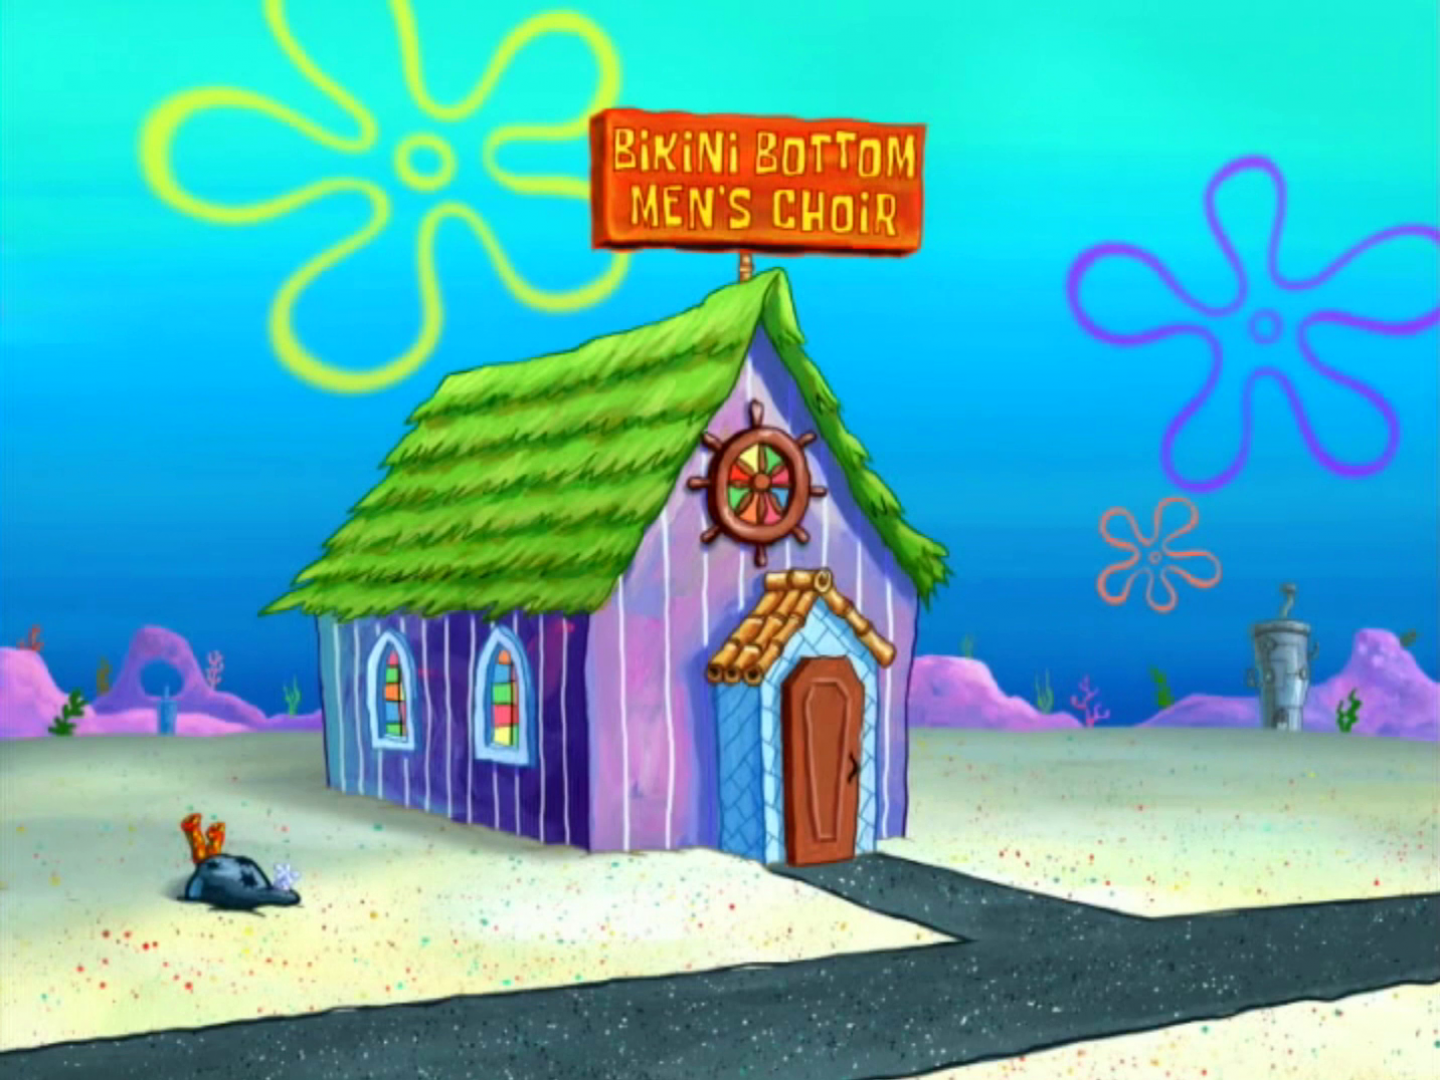 Bikini Bottom Men's Choir Studio